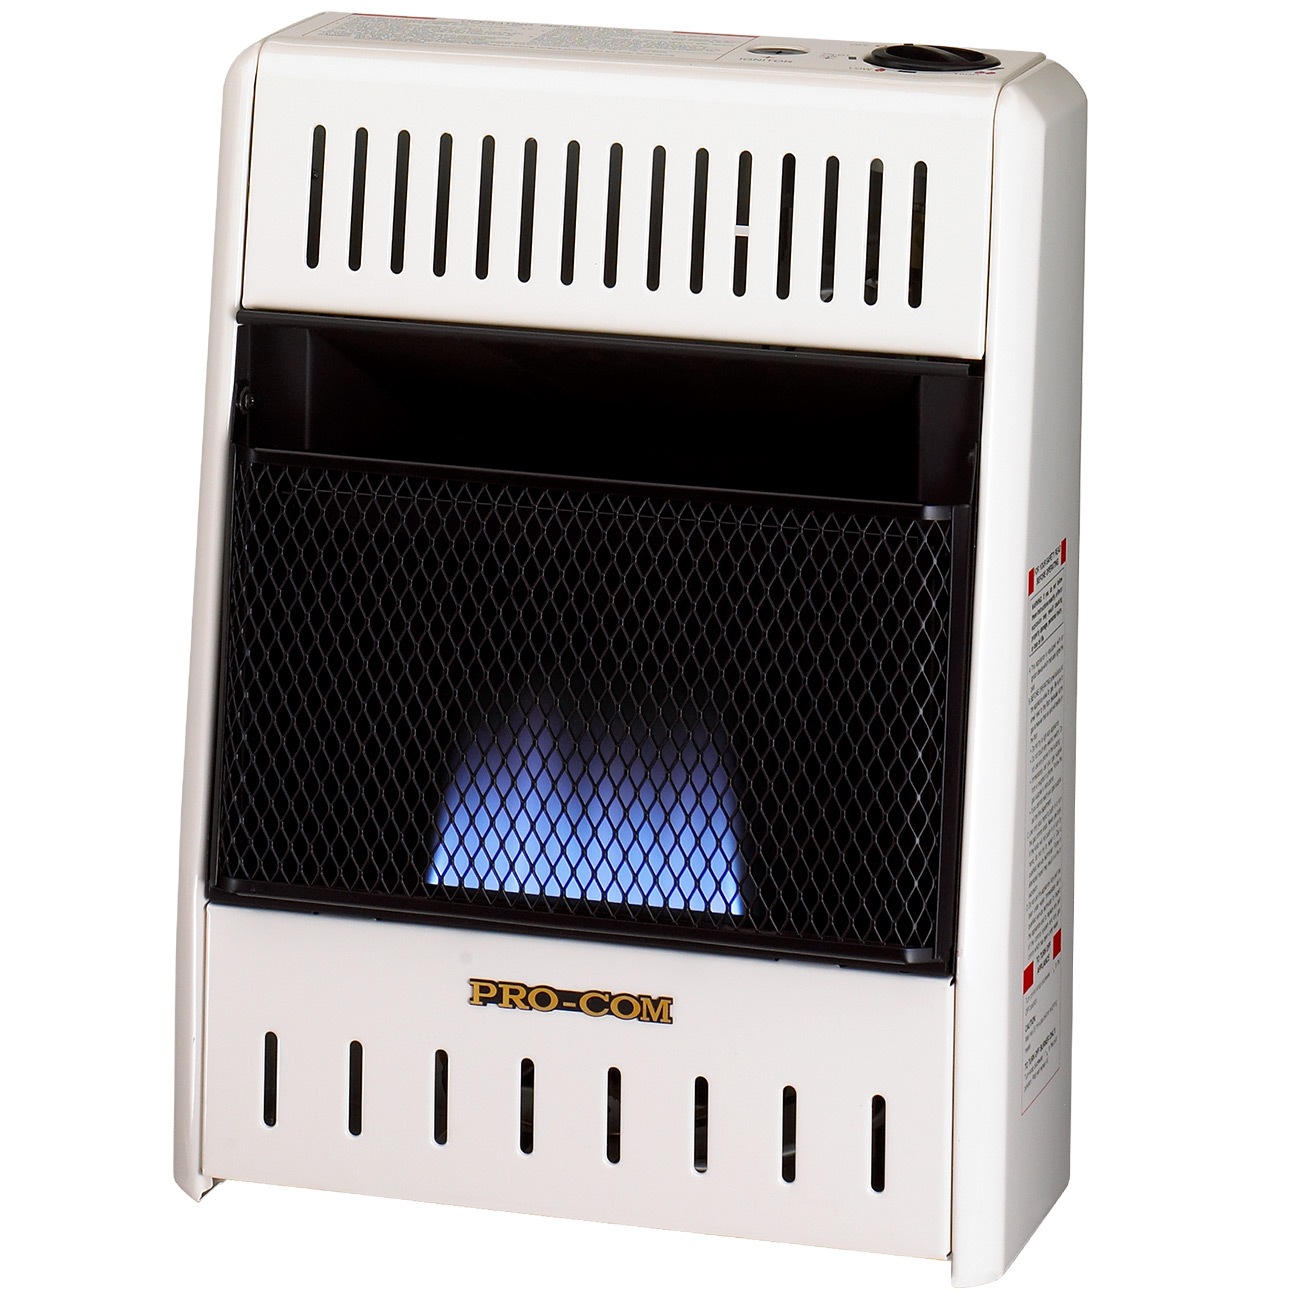 Ventless blue flame propane gas wall heater 10 000 btu for Best propane heating systems